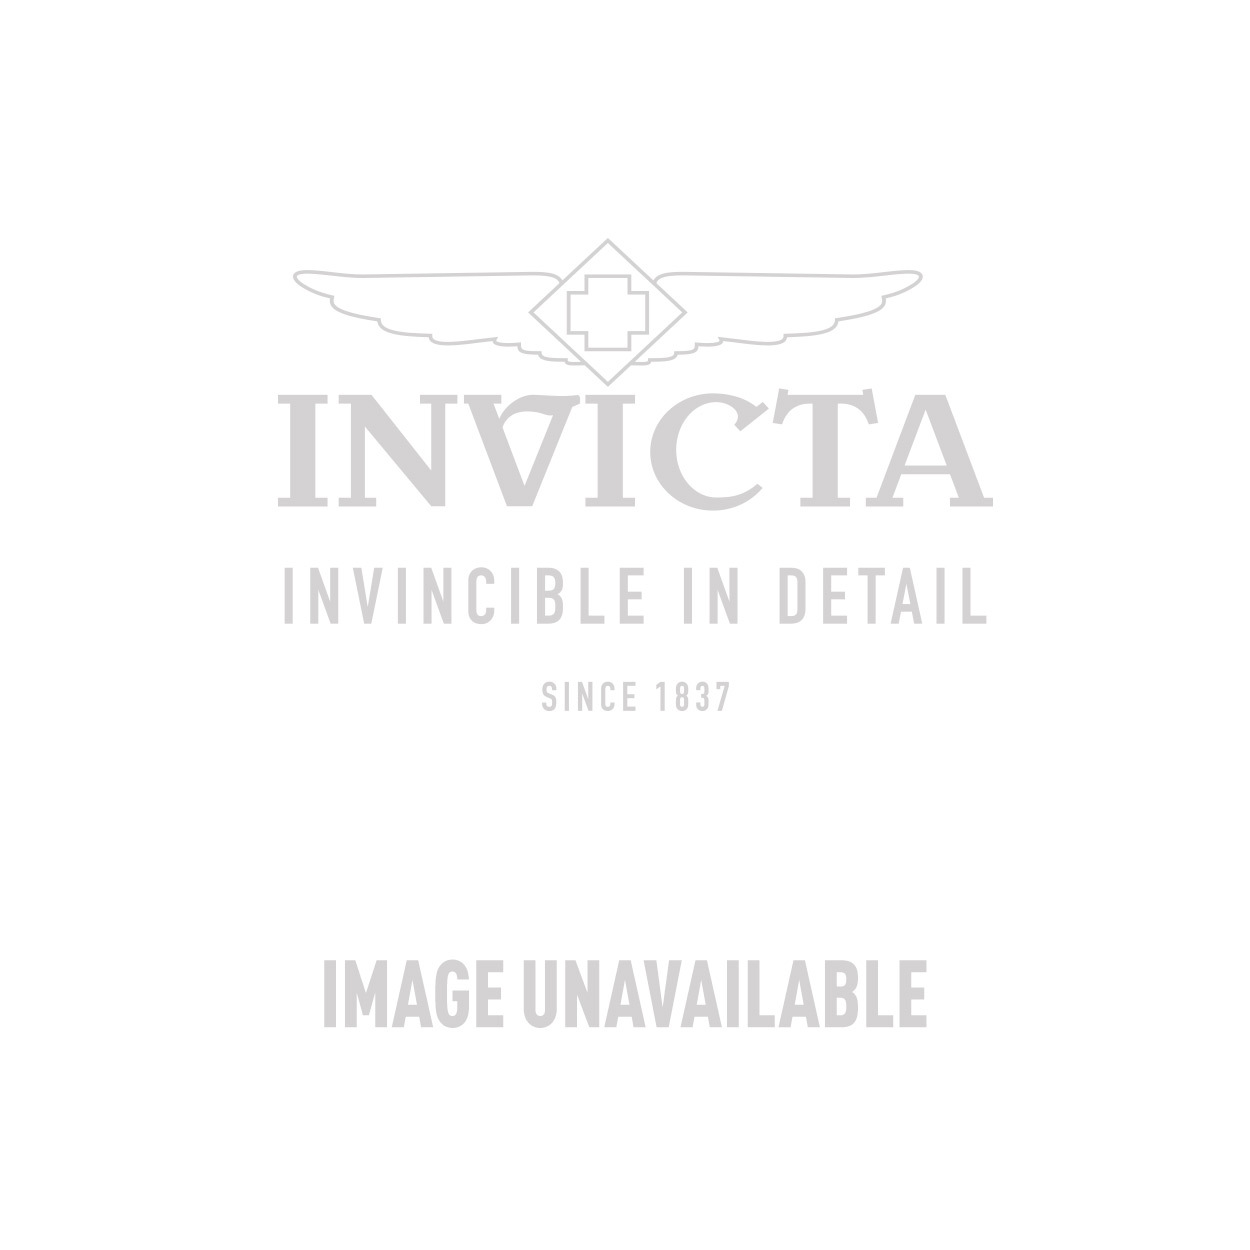 Invicta Pro Diver Automatic Watch - Stainless Steel case Stainless Steel band - Model 9094